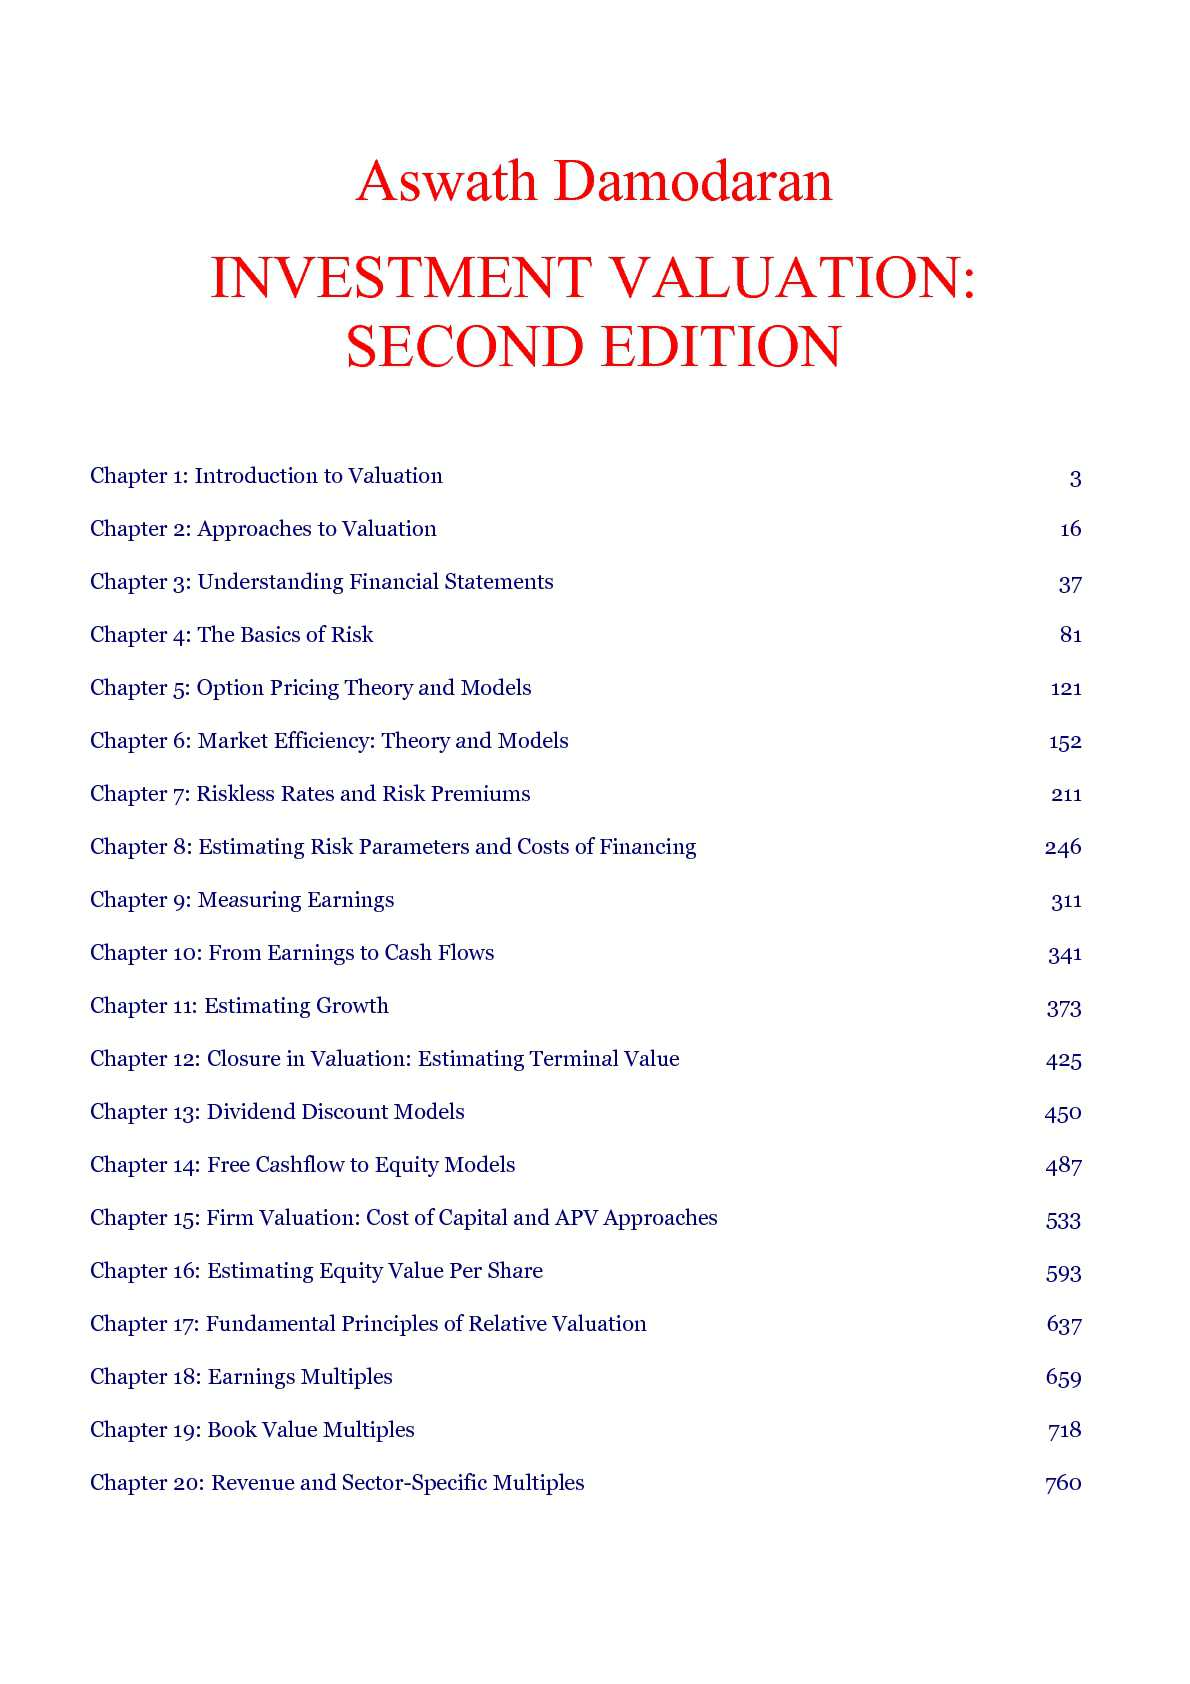 Mcgraw-Hill - Brealey & Myers - Finance - Investment Valuation, 2nd Edition